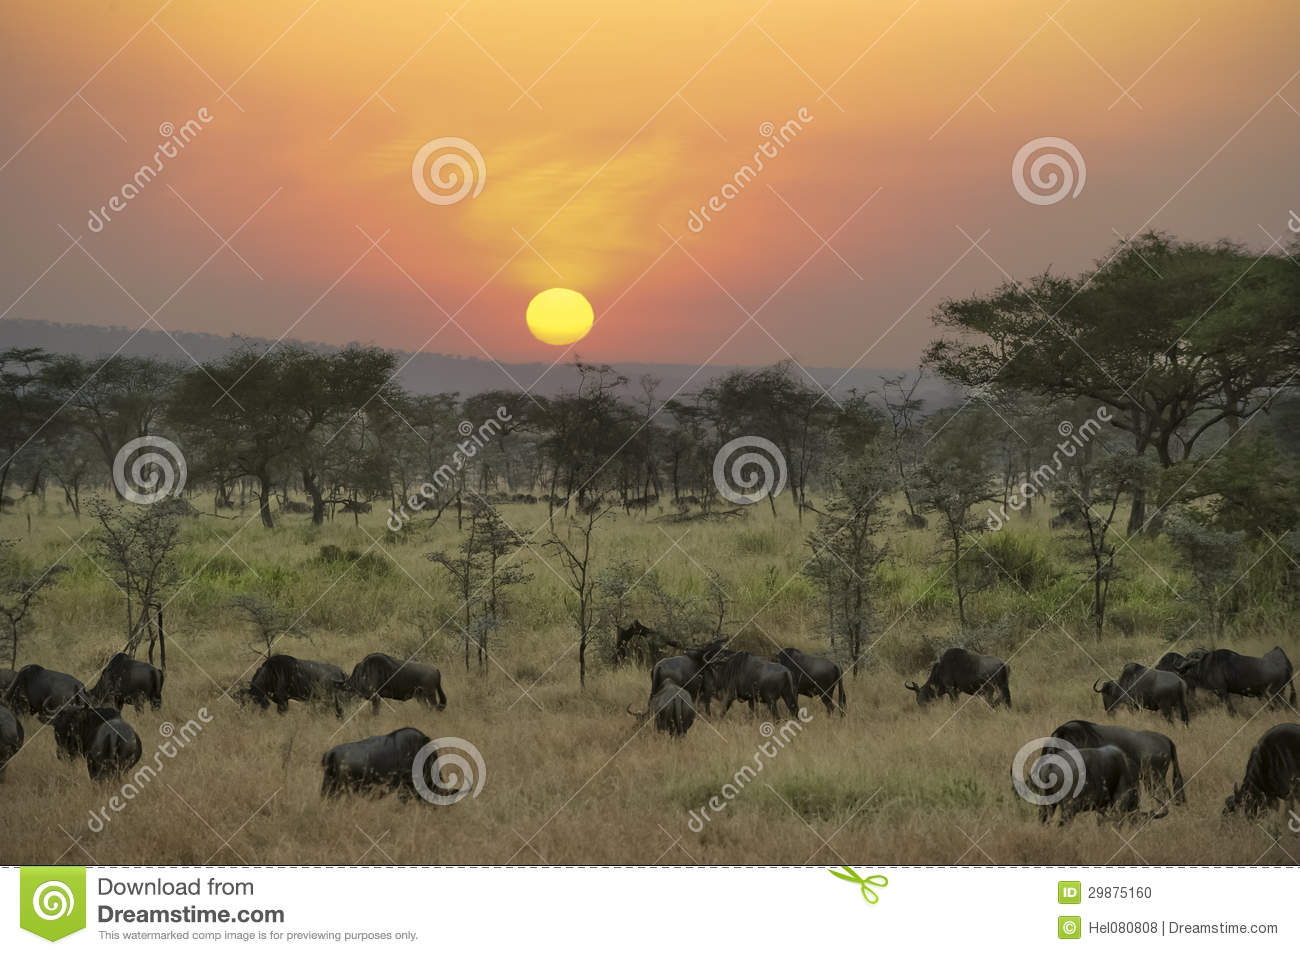 Wildebeests at sunset in Serengeti